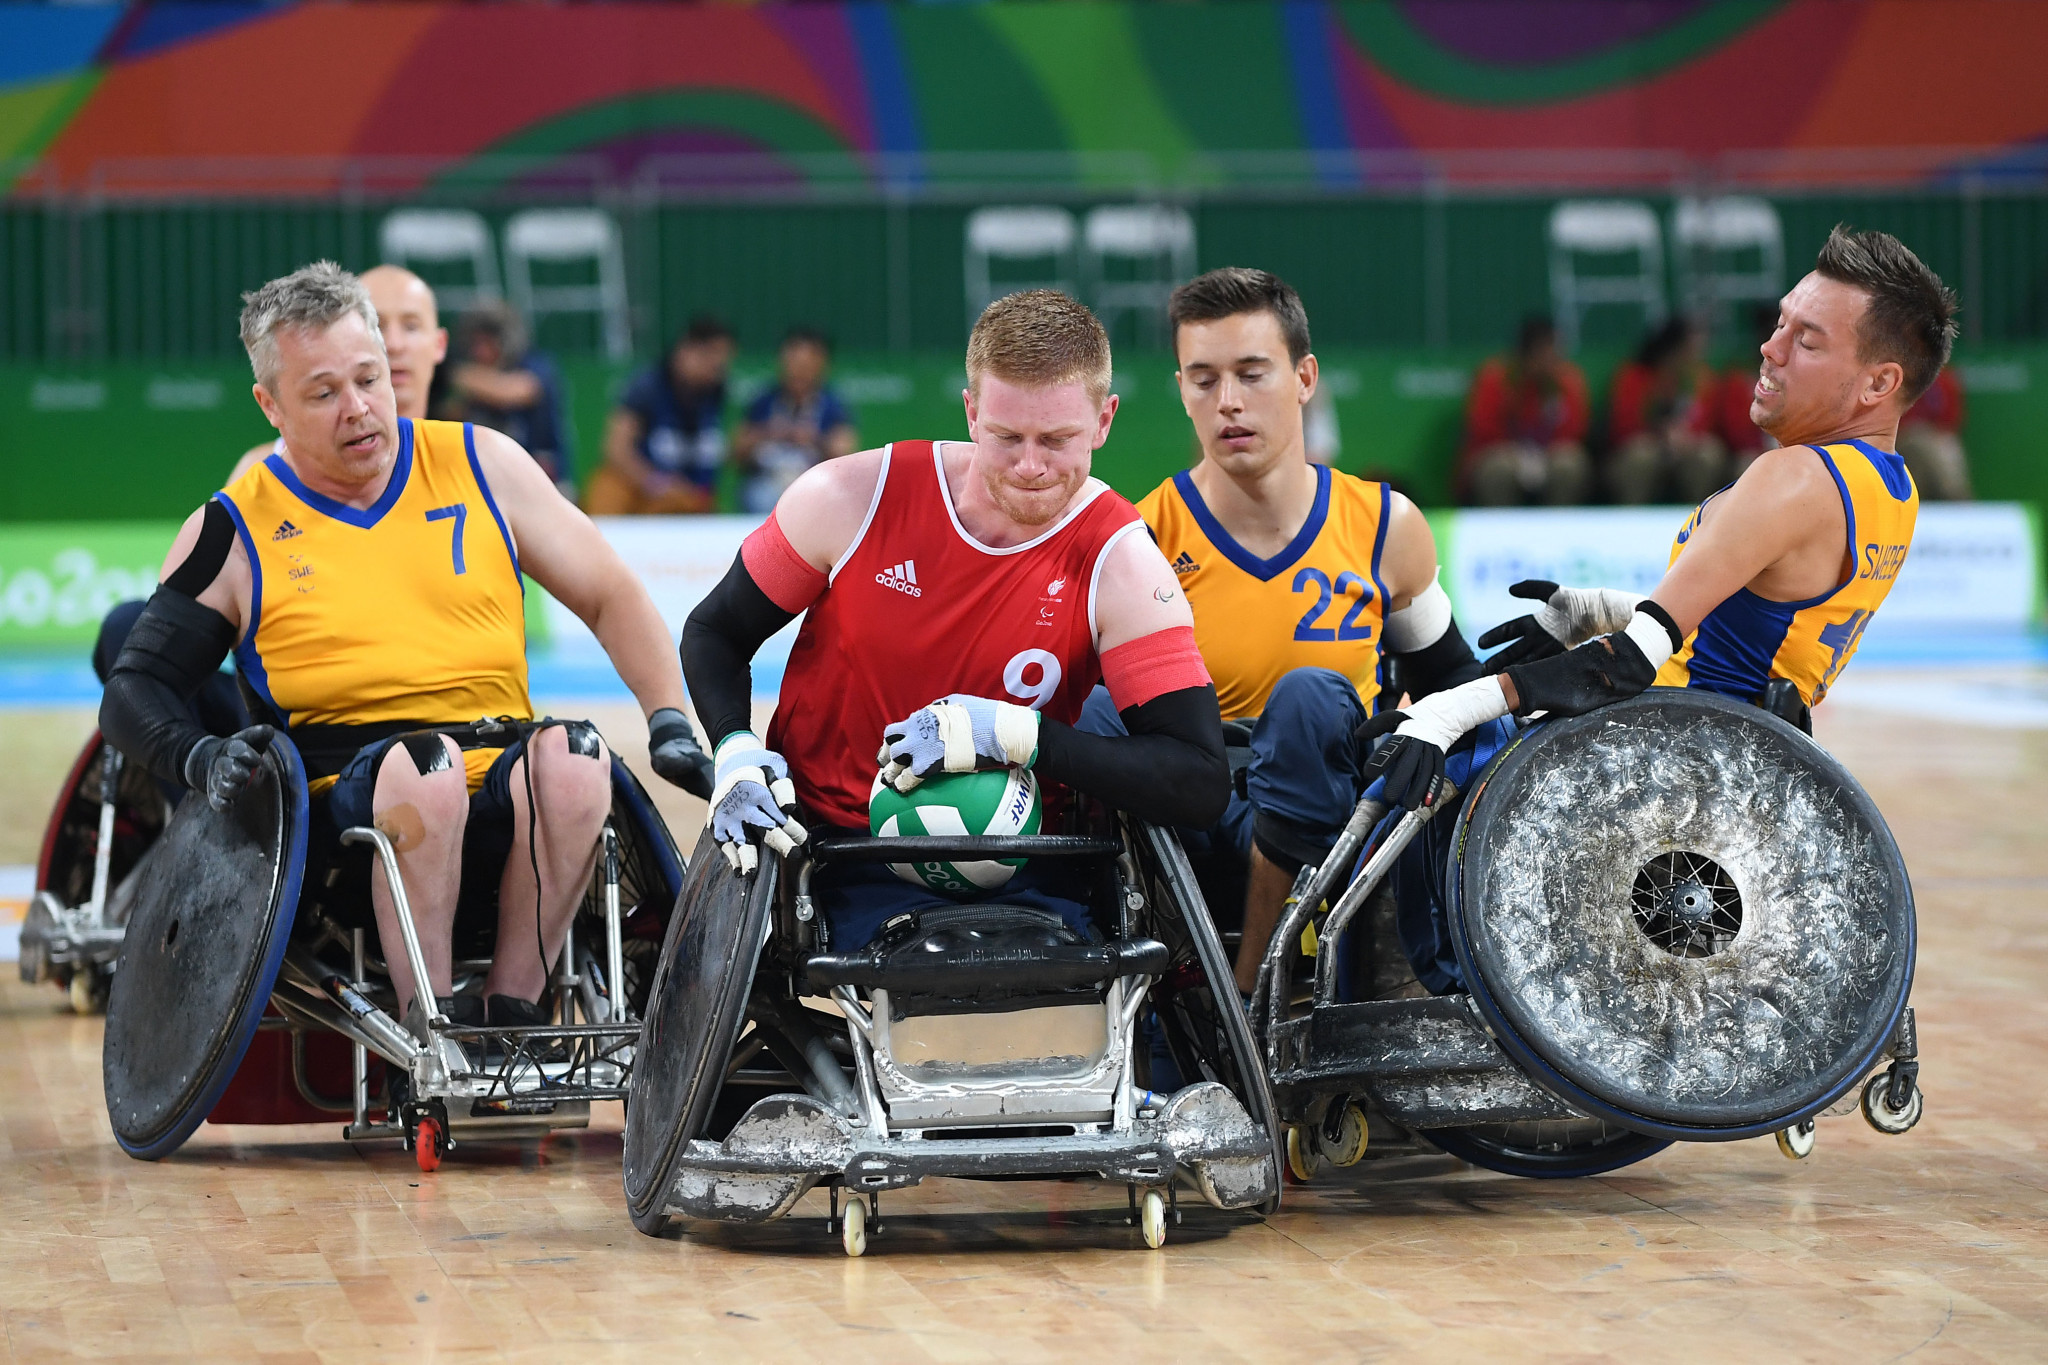 International Wheelchair Rugby Federation seeks bids for events in 2022